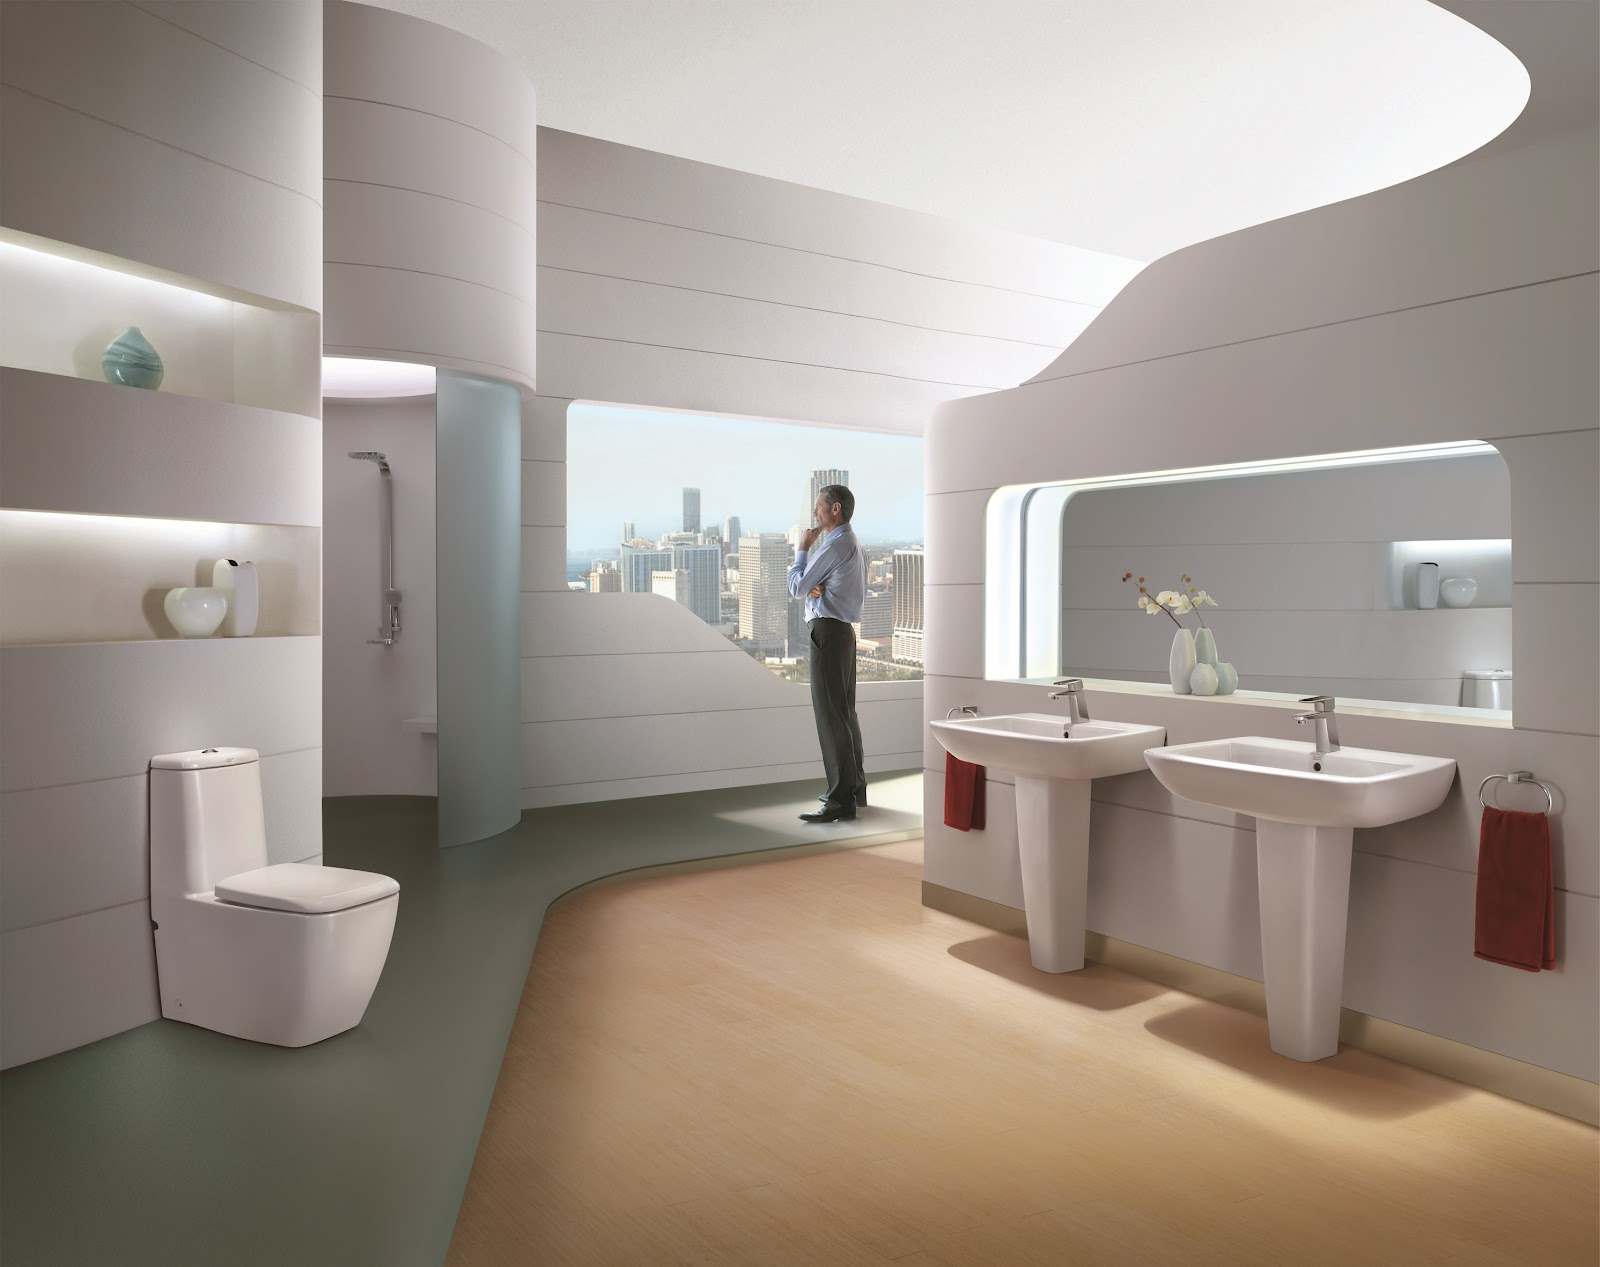 American Standard Launches New Luxury Line Of Bathroom Fixtures The Contemporary Boy